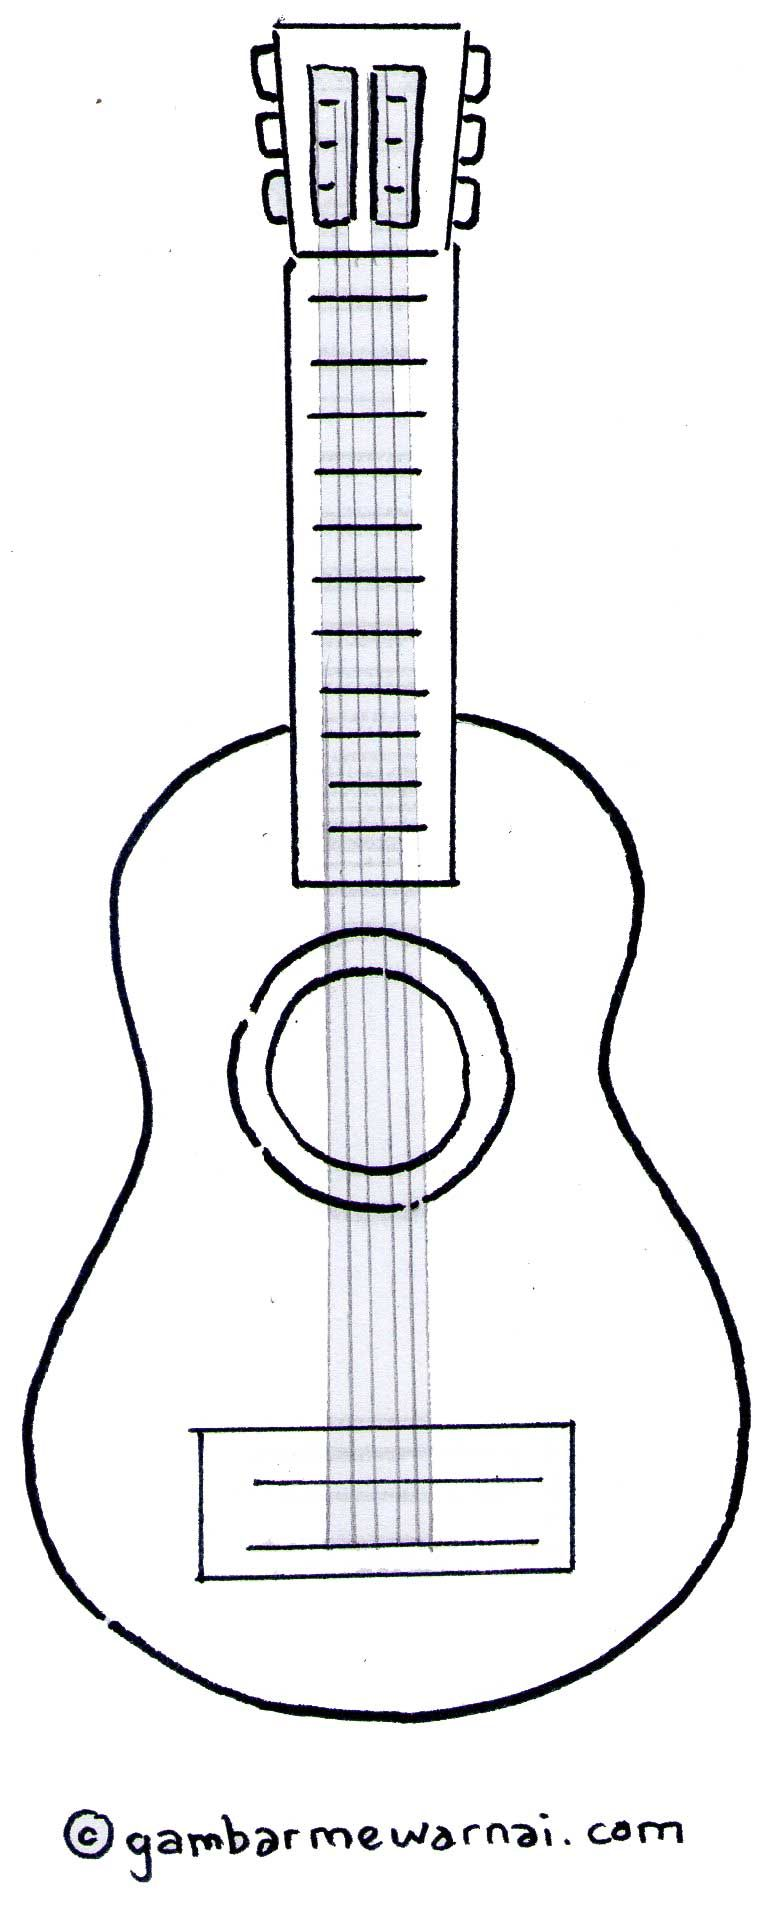 Gambar Mewarnai Gitar Doraemon Microsoft Word Coloring Books Projects To Try Punto